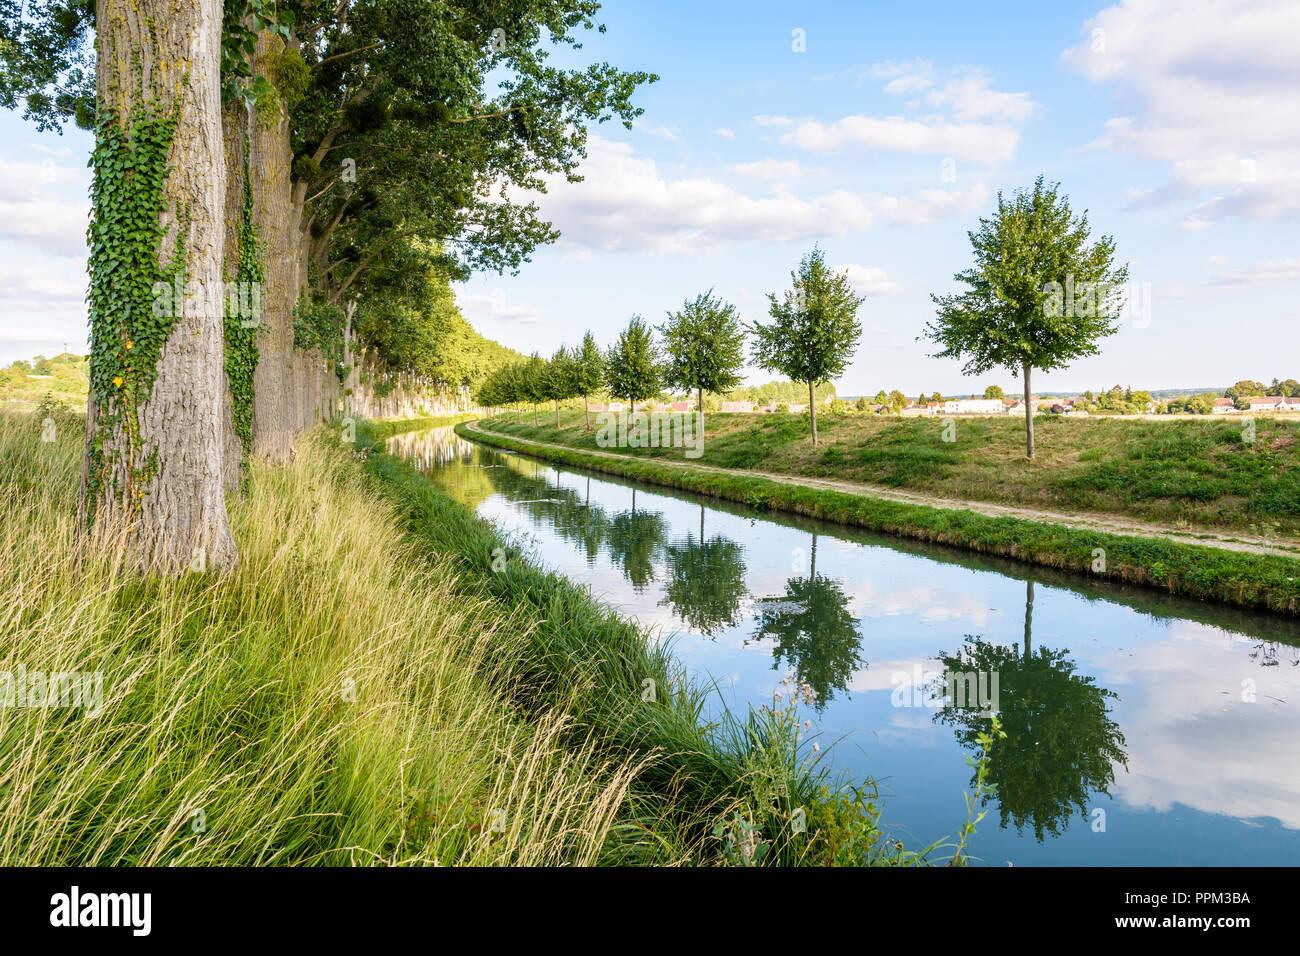 The tree lined canal of the river Marne in France with a towpath and young trees reflecting in the still waters. - Stock Image